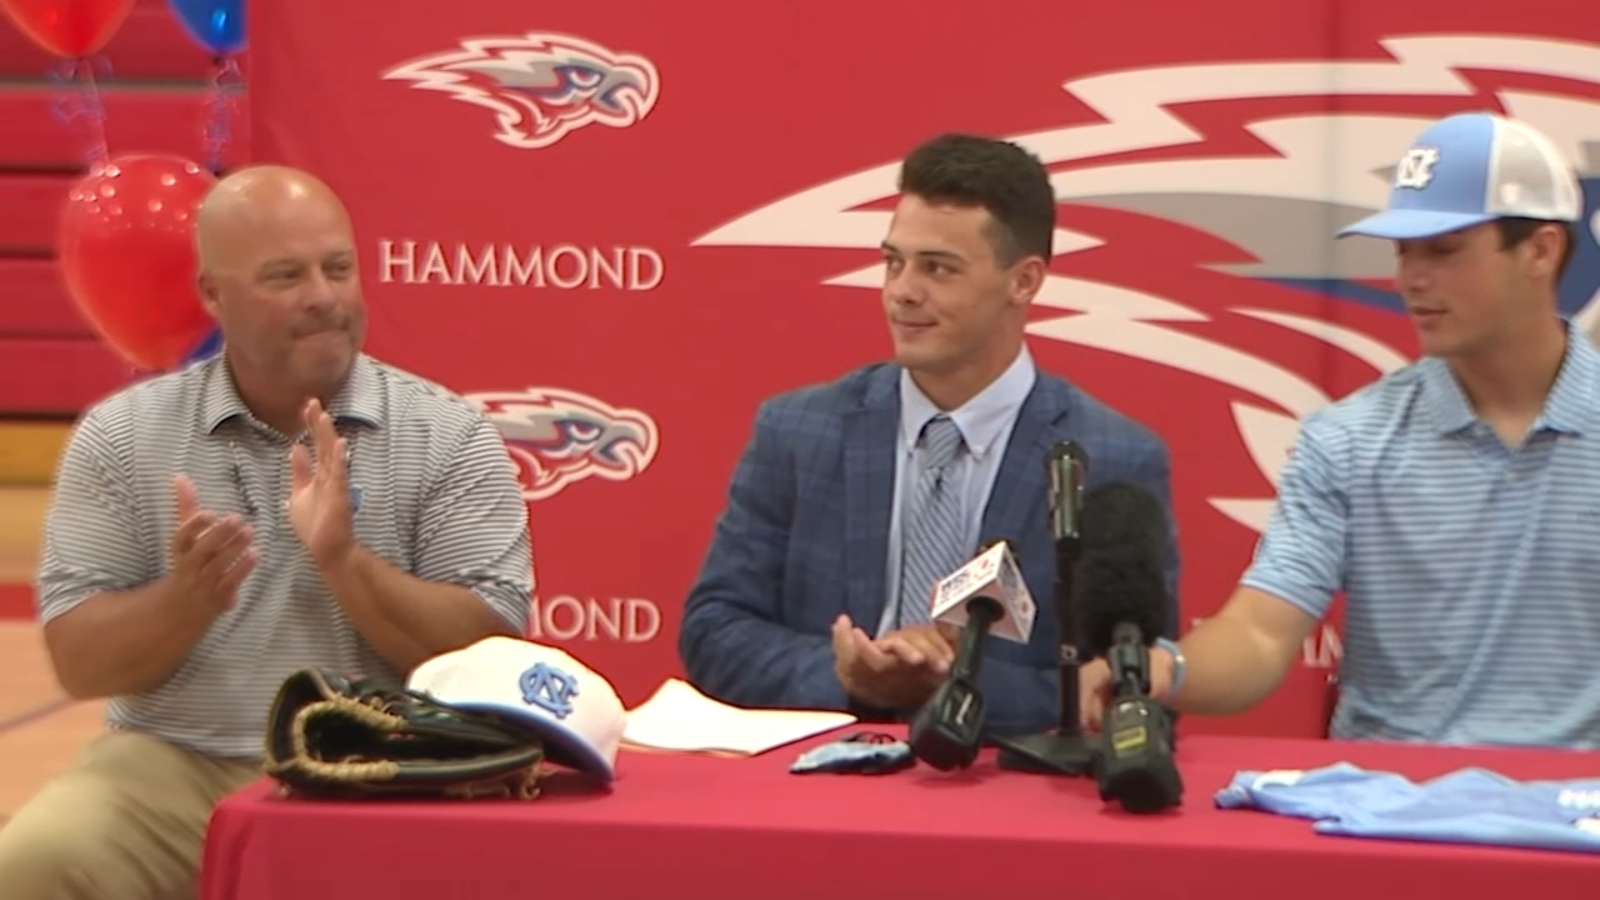 Reece Holbrook, son of College of Charleston head coach, signs with UNC baseball